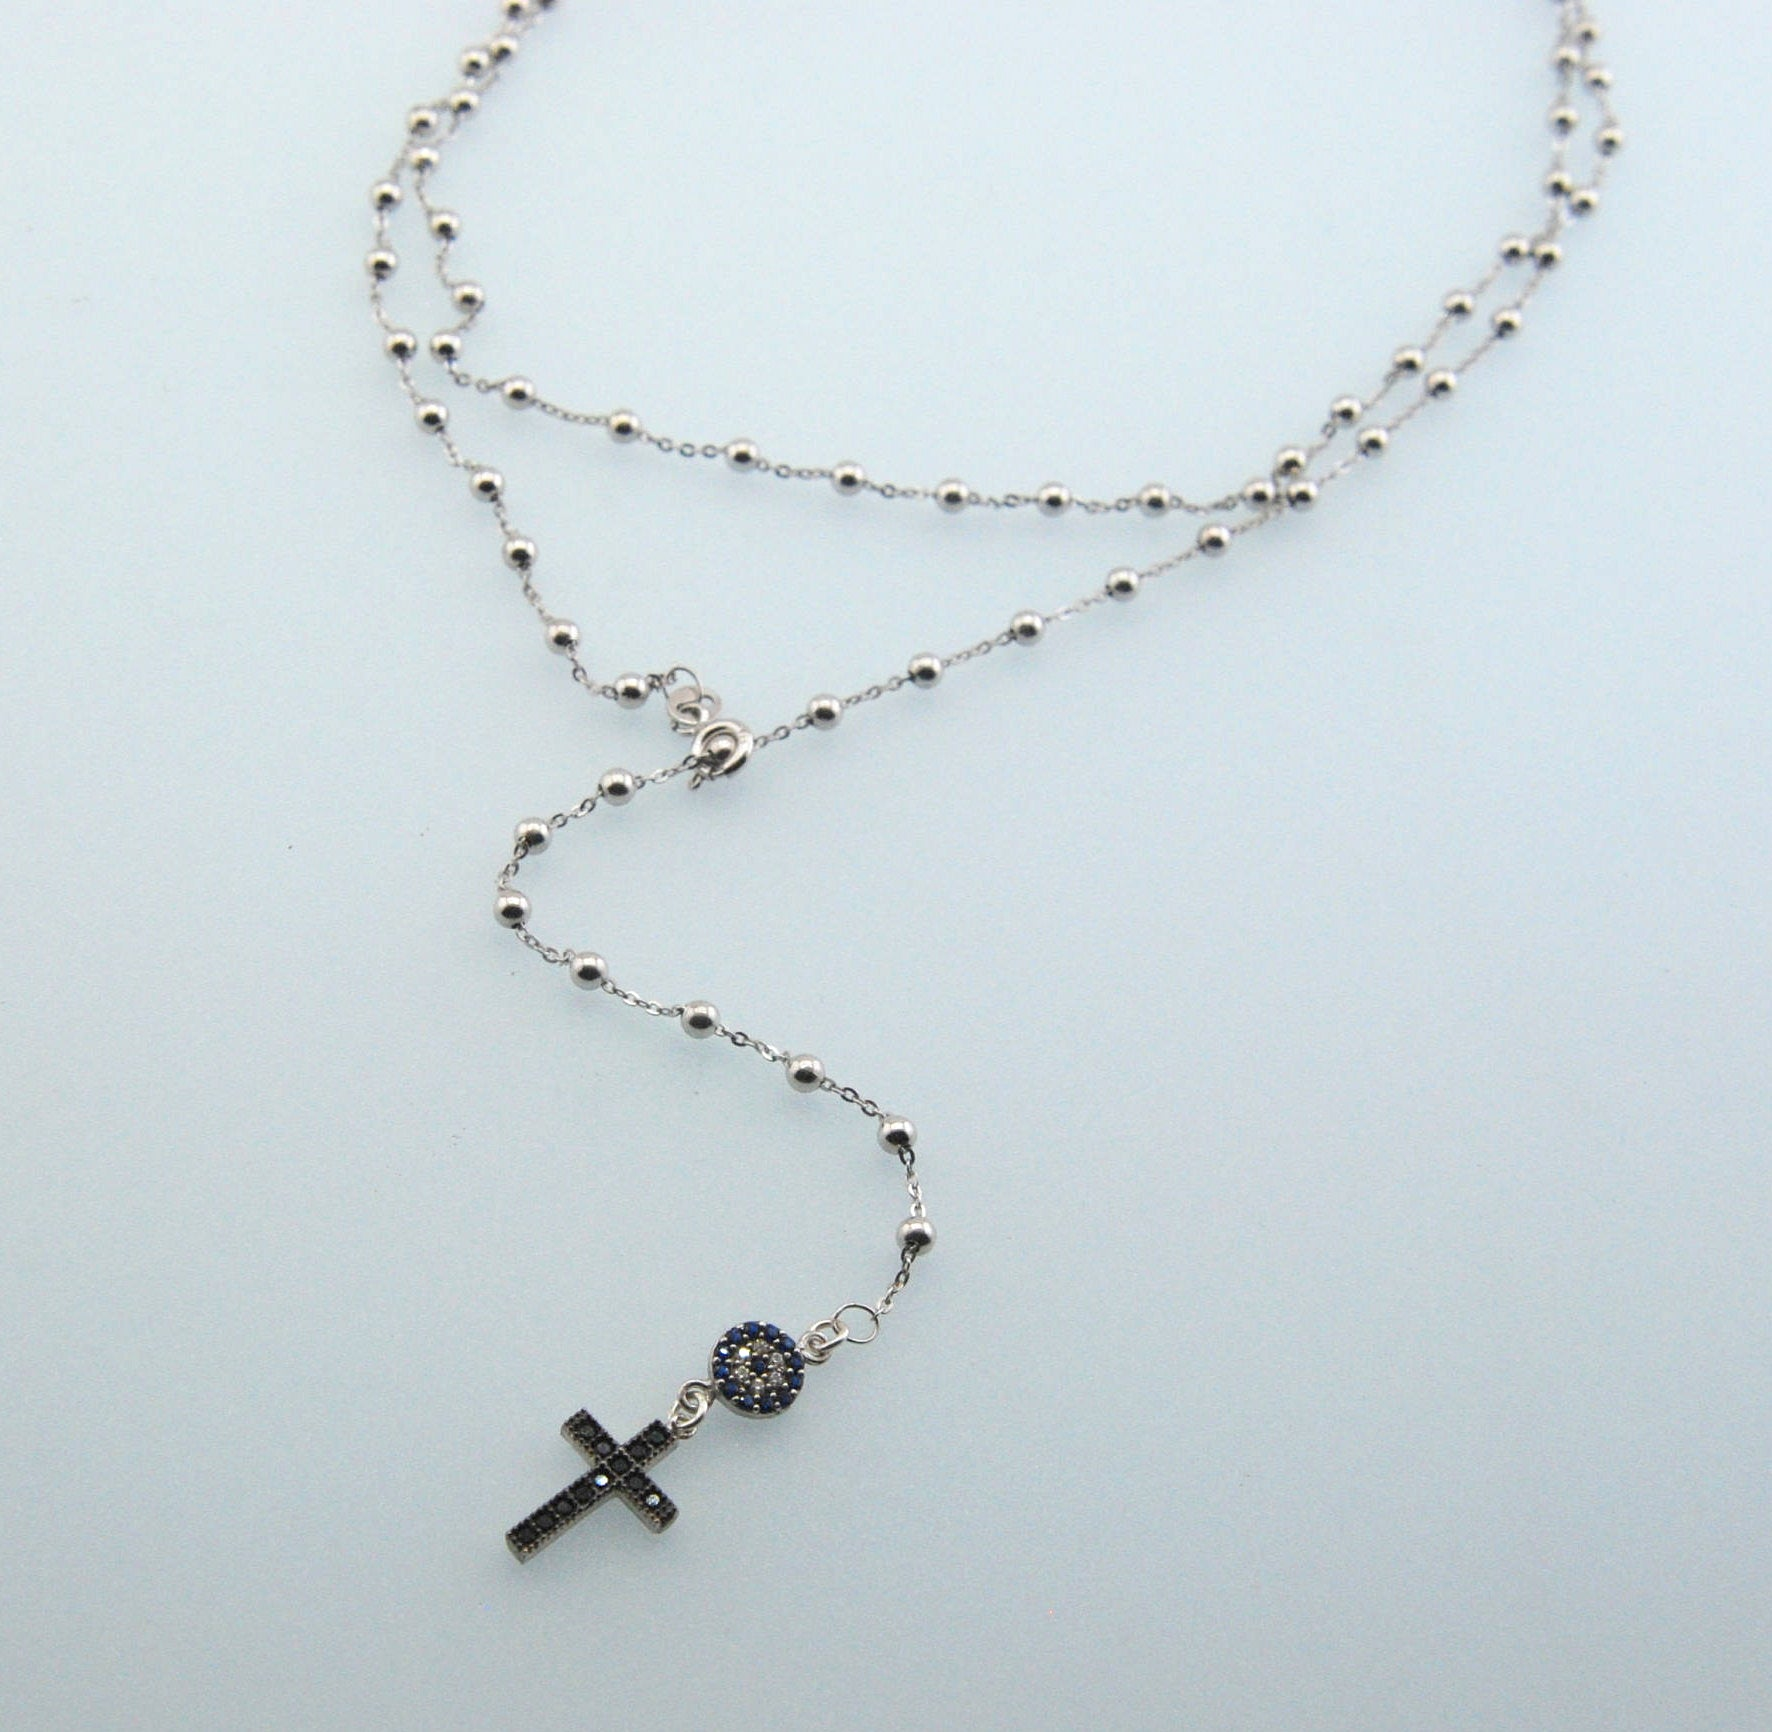 Handmade Evil Eye Protection Cross Necklace - Babazen